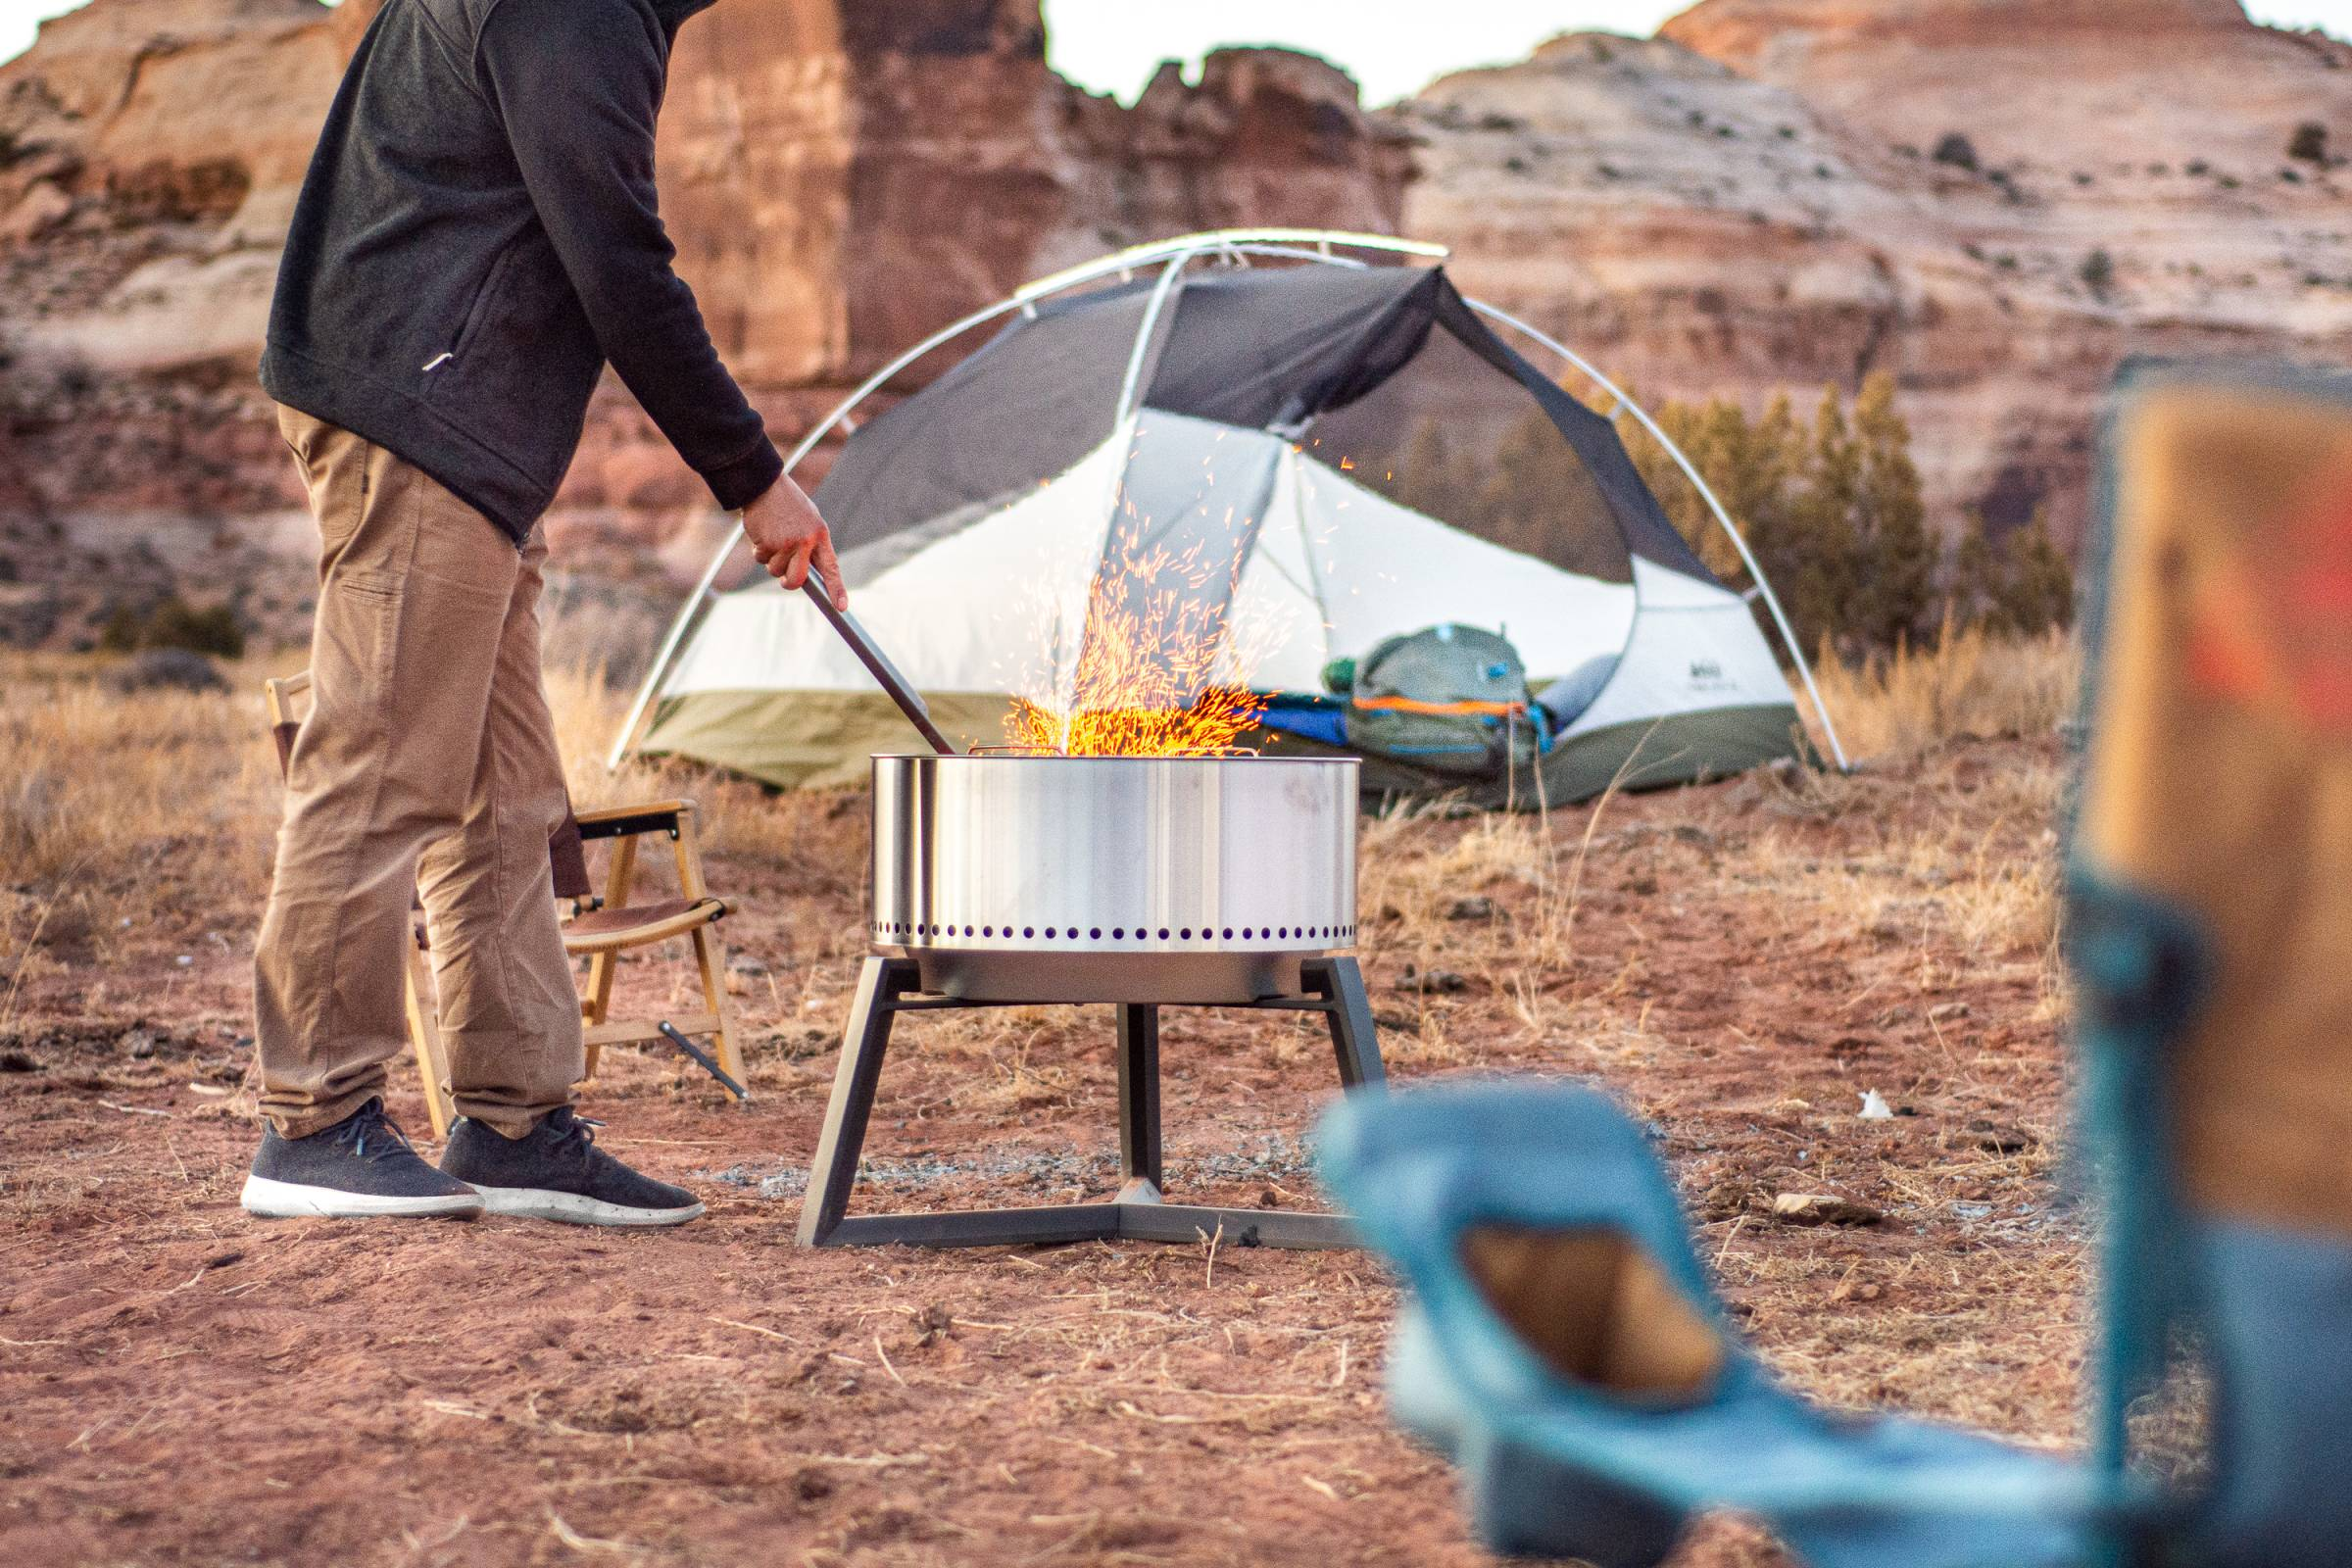 Testing the Solo Stove Grill while camping in Moab.